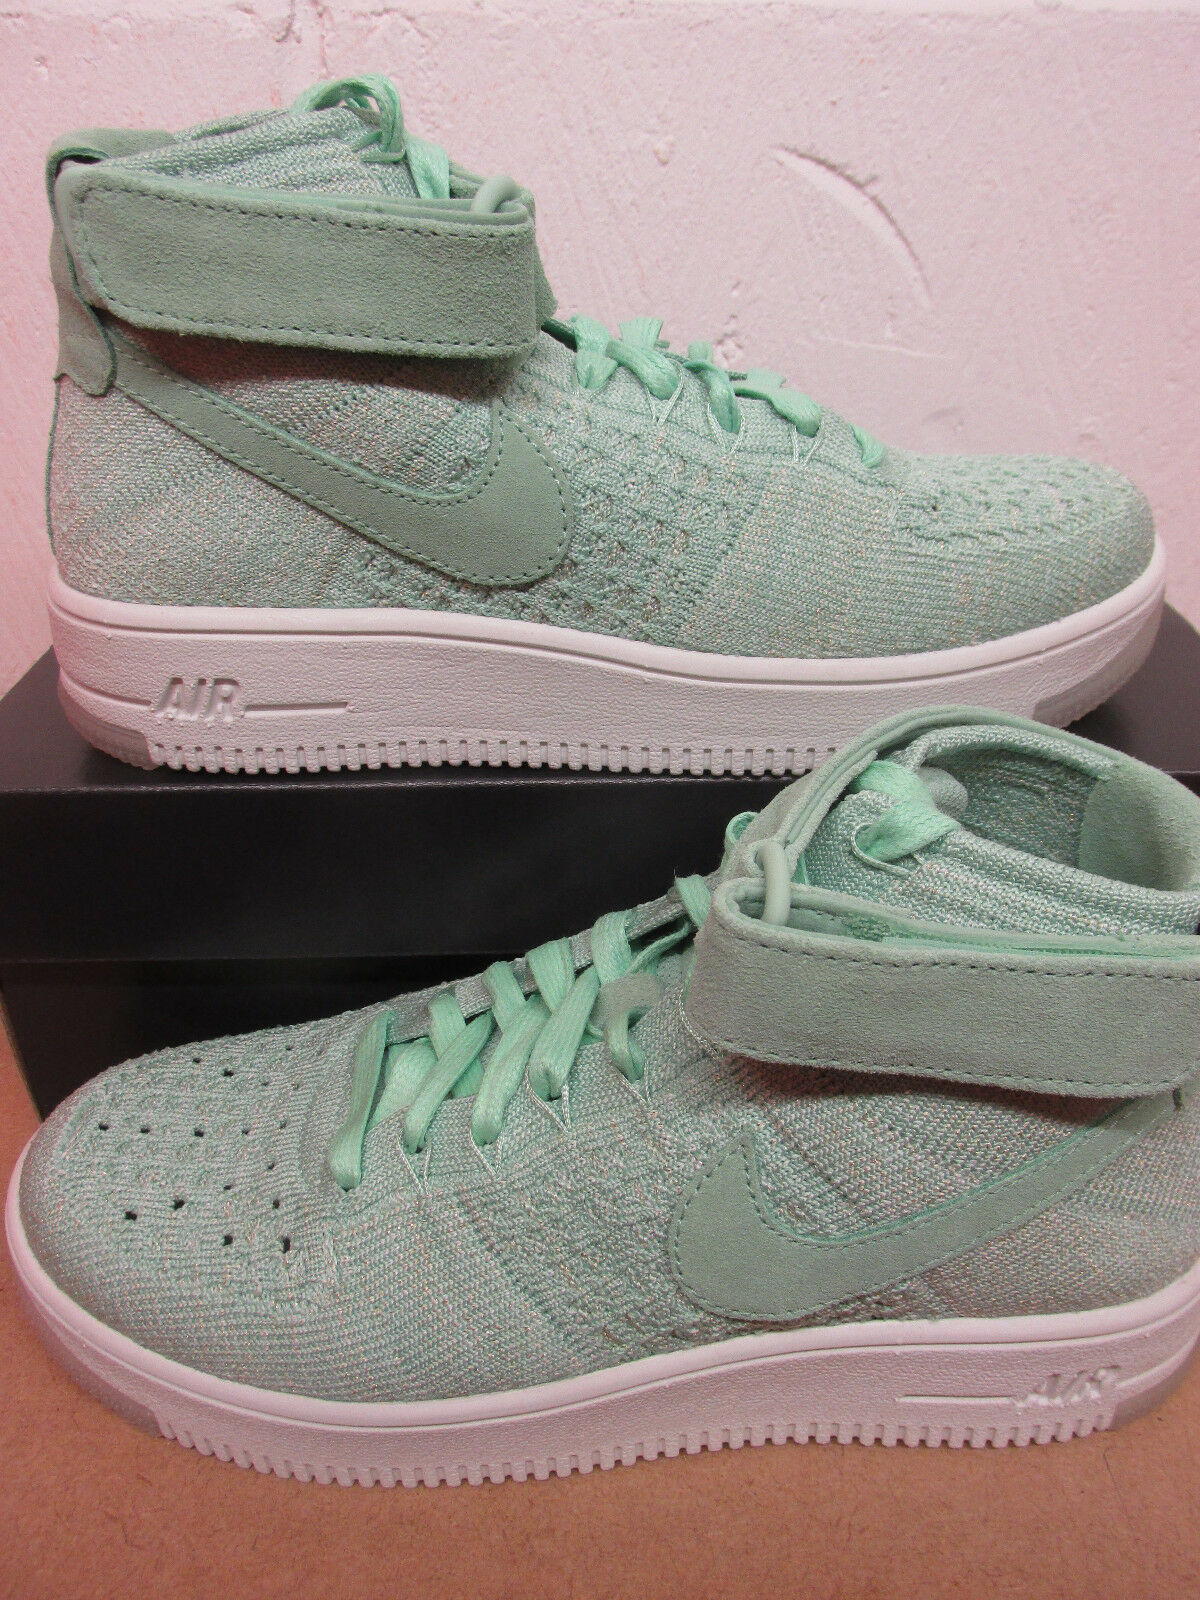 Nike Femmes AF1 Air Force 1 Flyknit Baskets Montantes 818018 301 Baskets